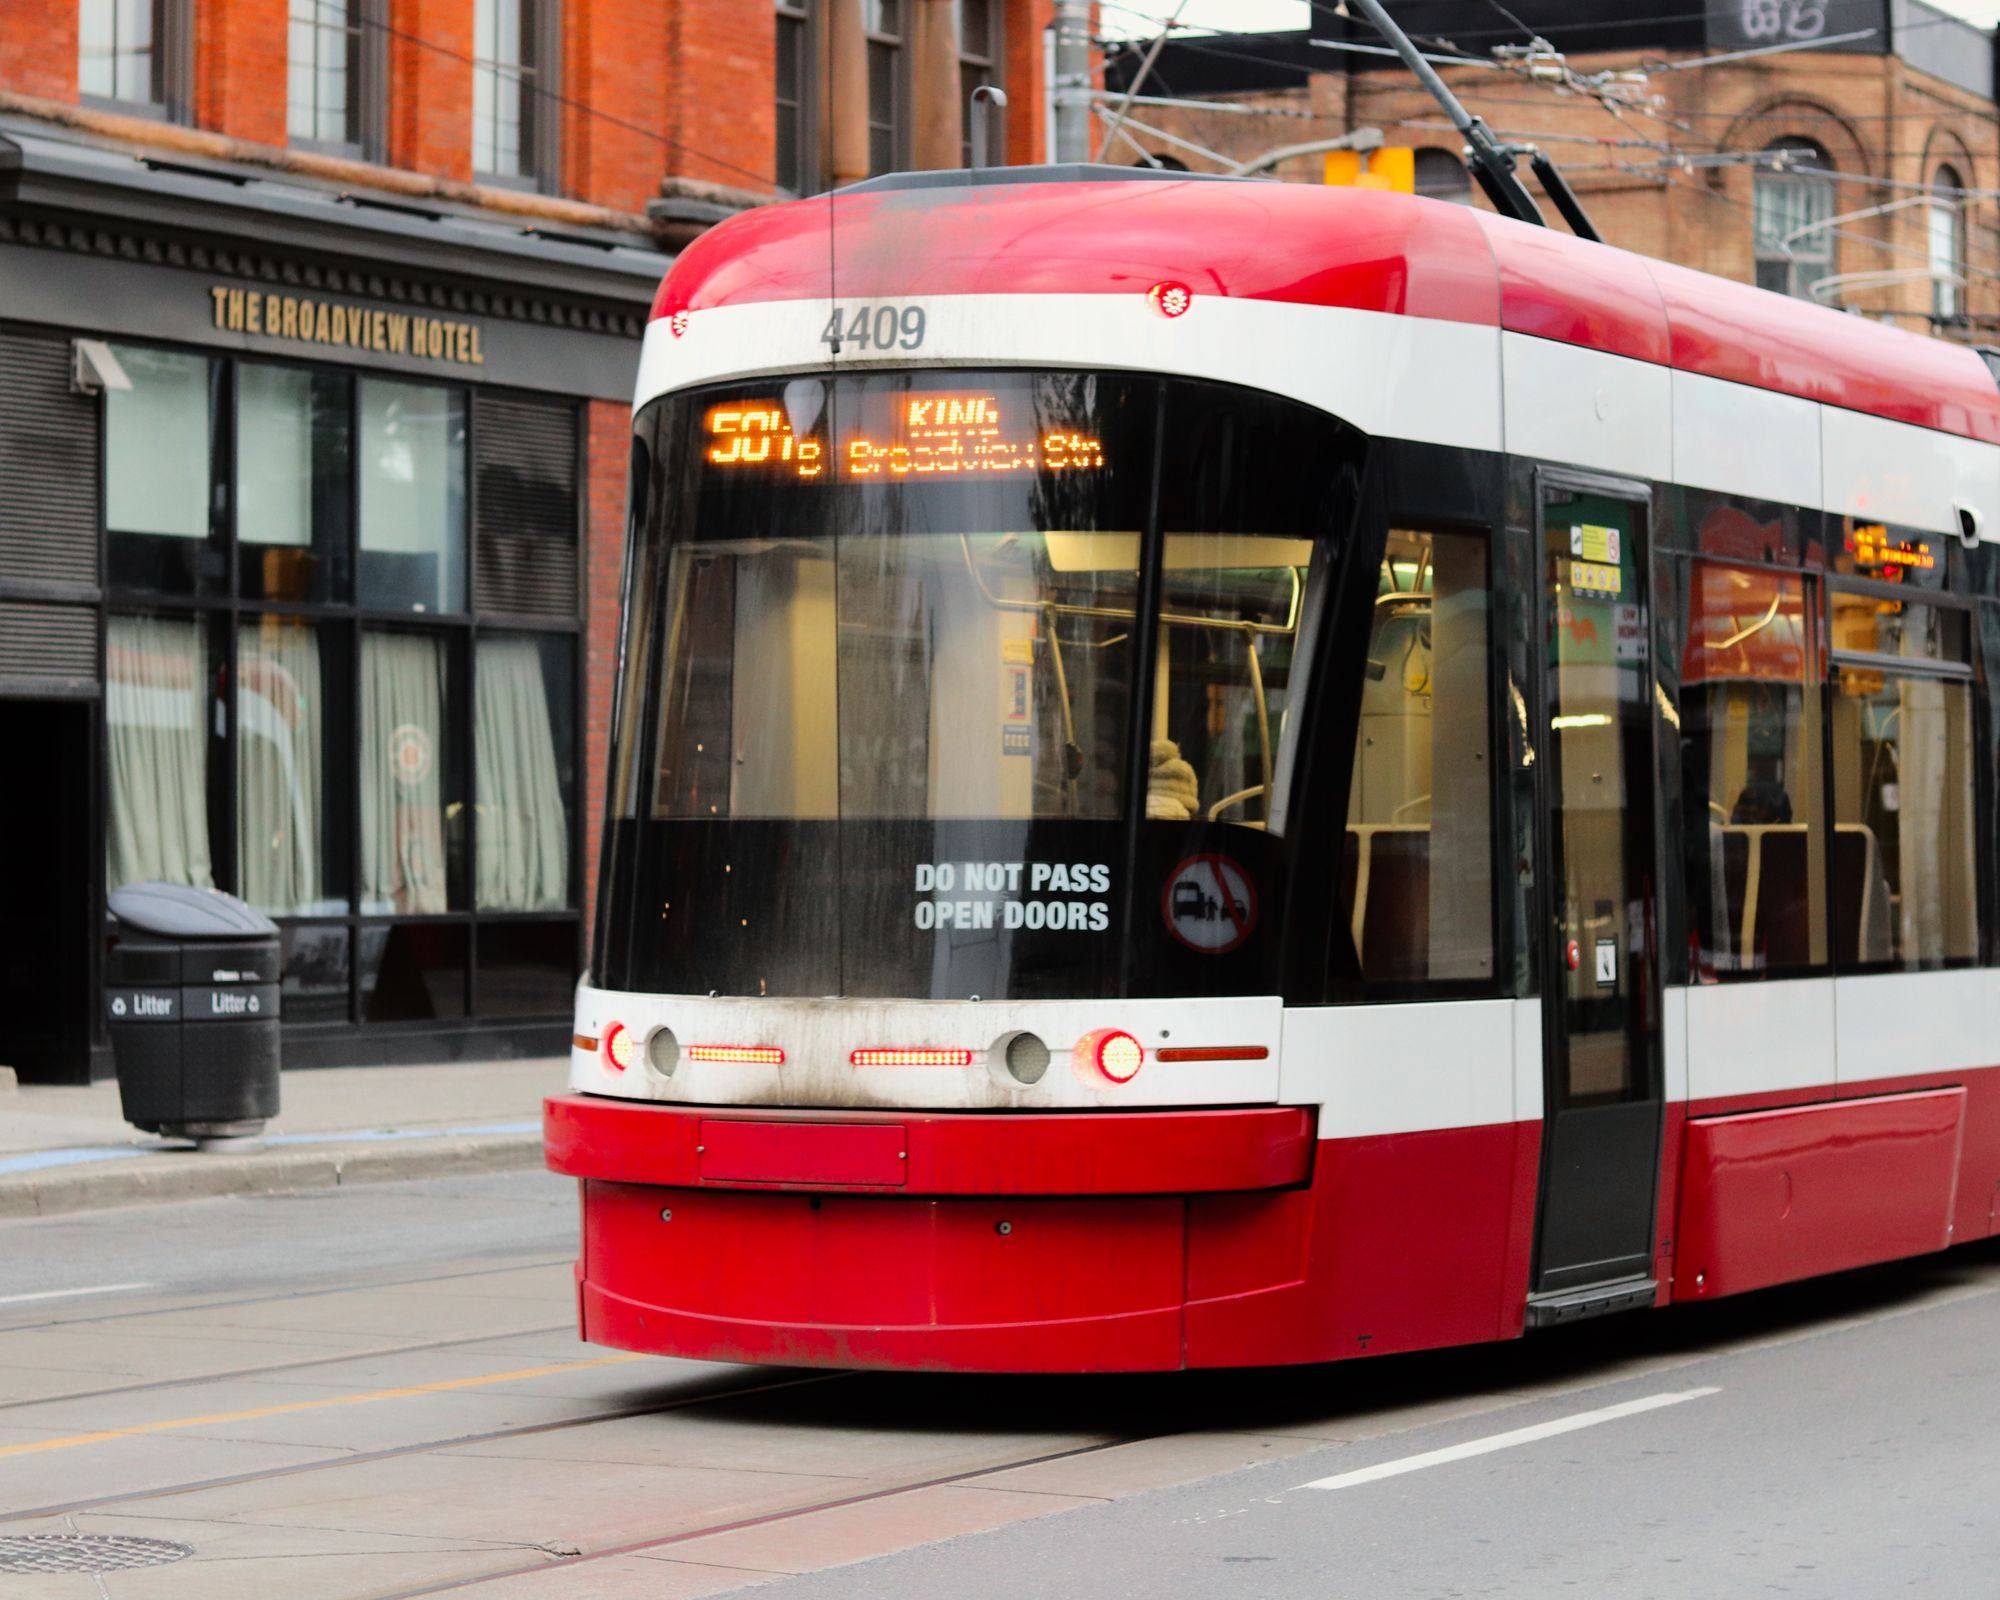 TTC street car with Broadview Hotel visible in background